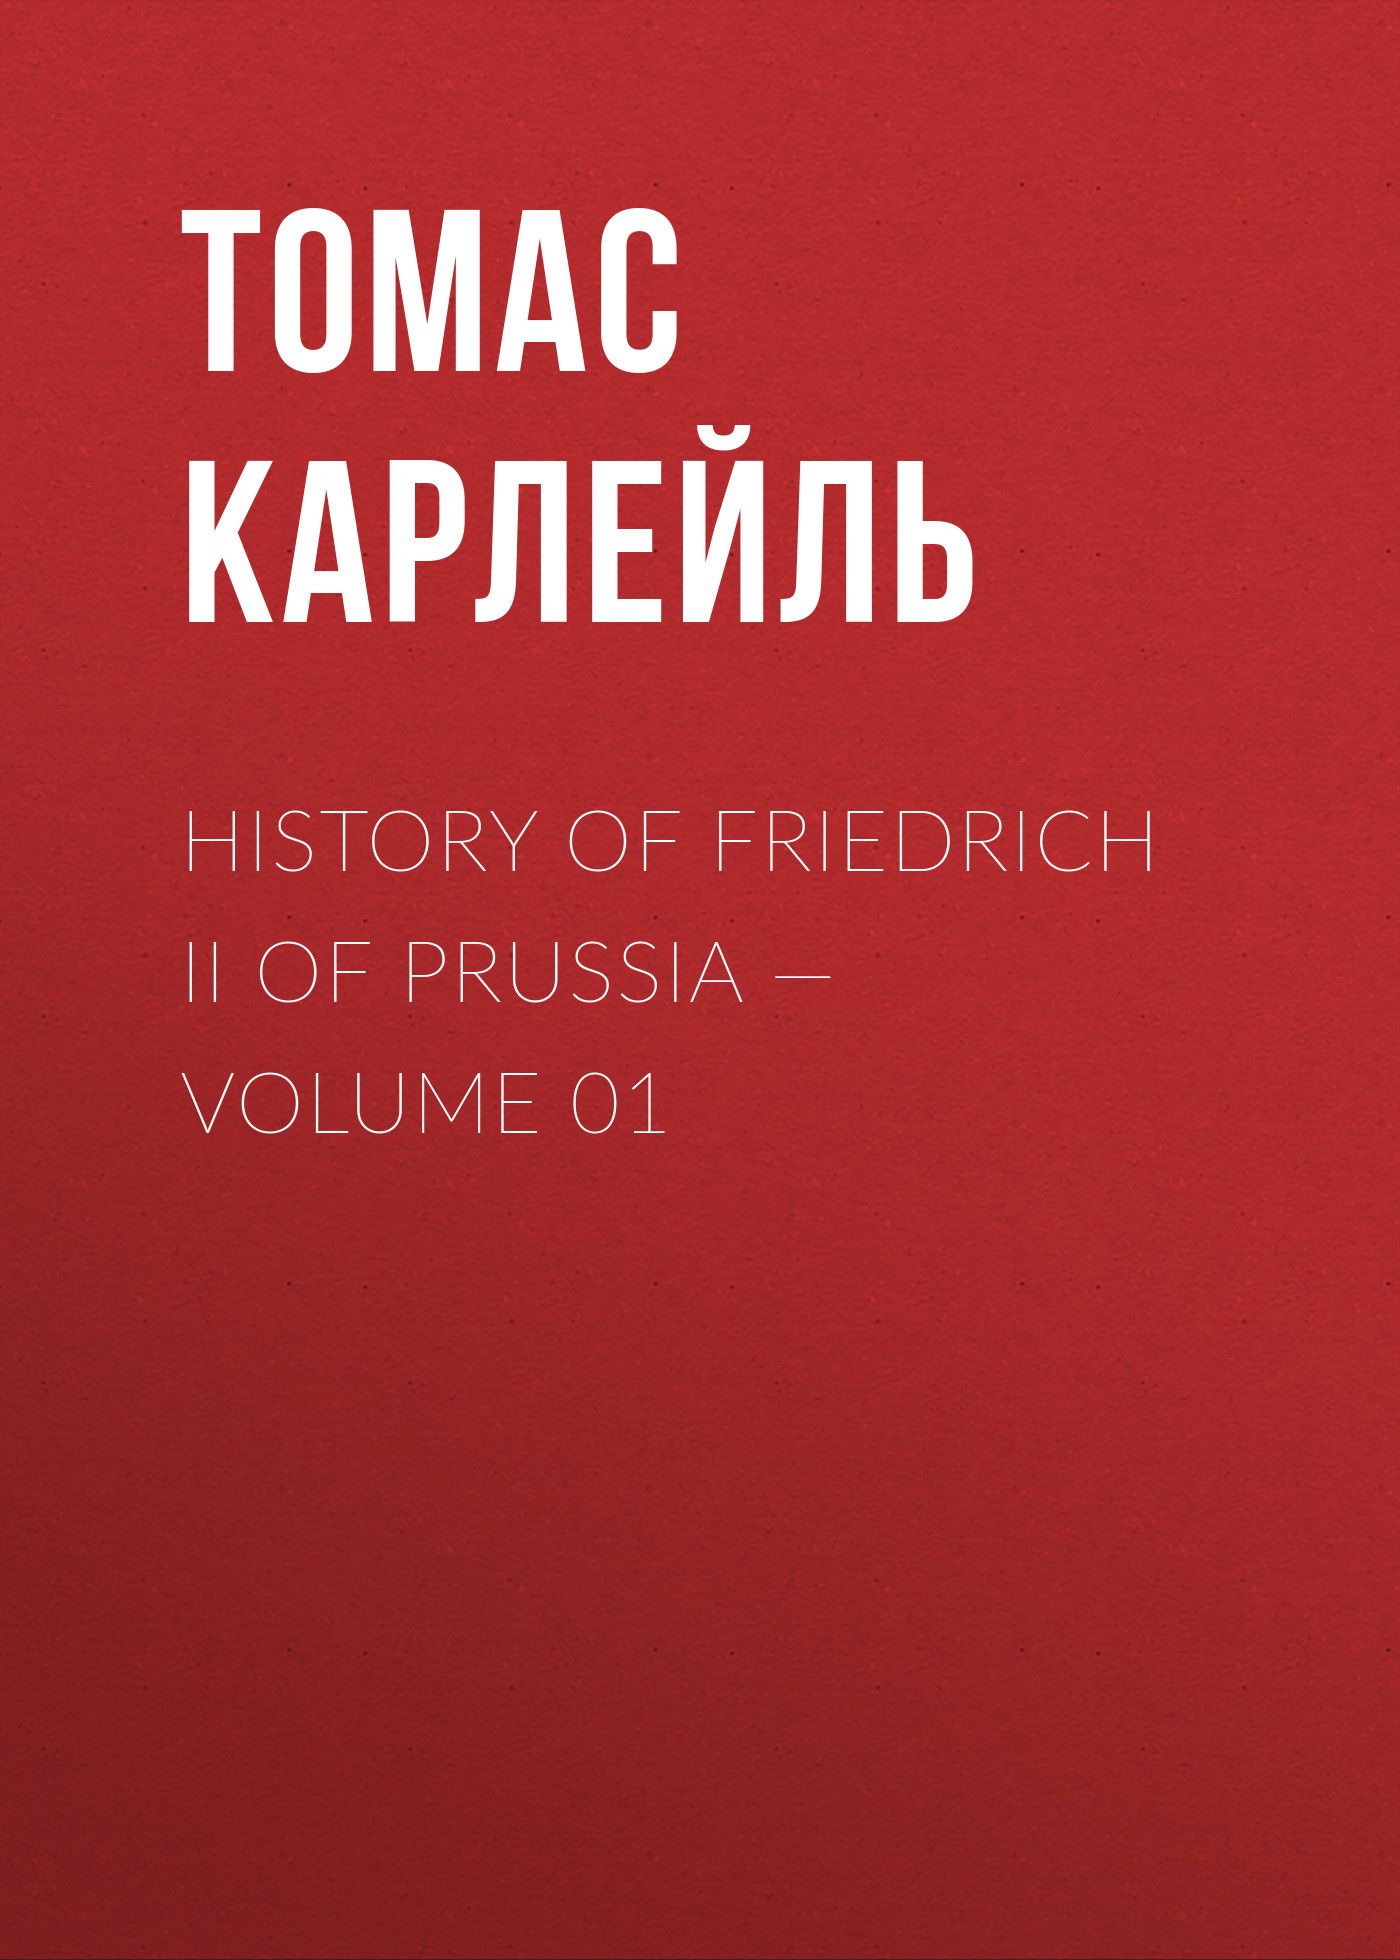 Томас Карлейль History of Friedrich II of Prussia — Volume 01 томас карлейль history of friedrich ii of prussia volume 10